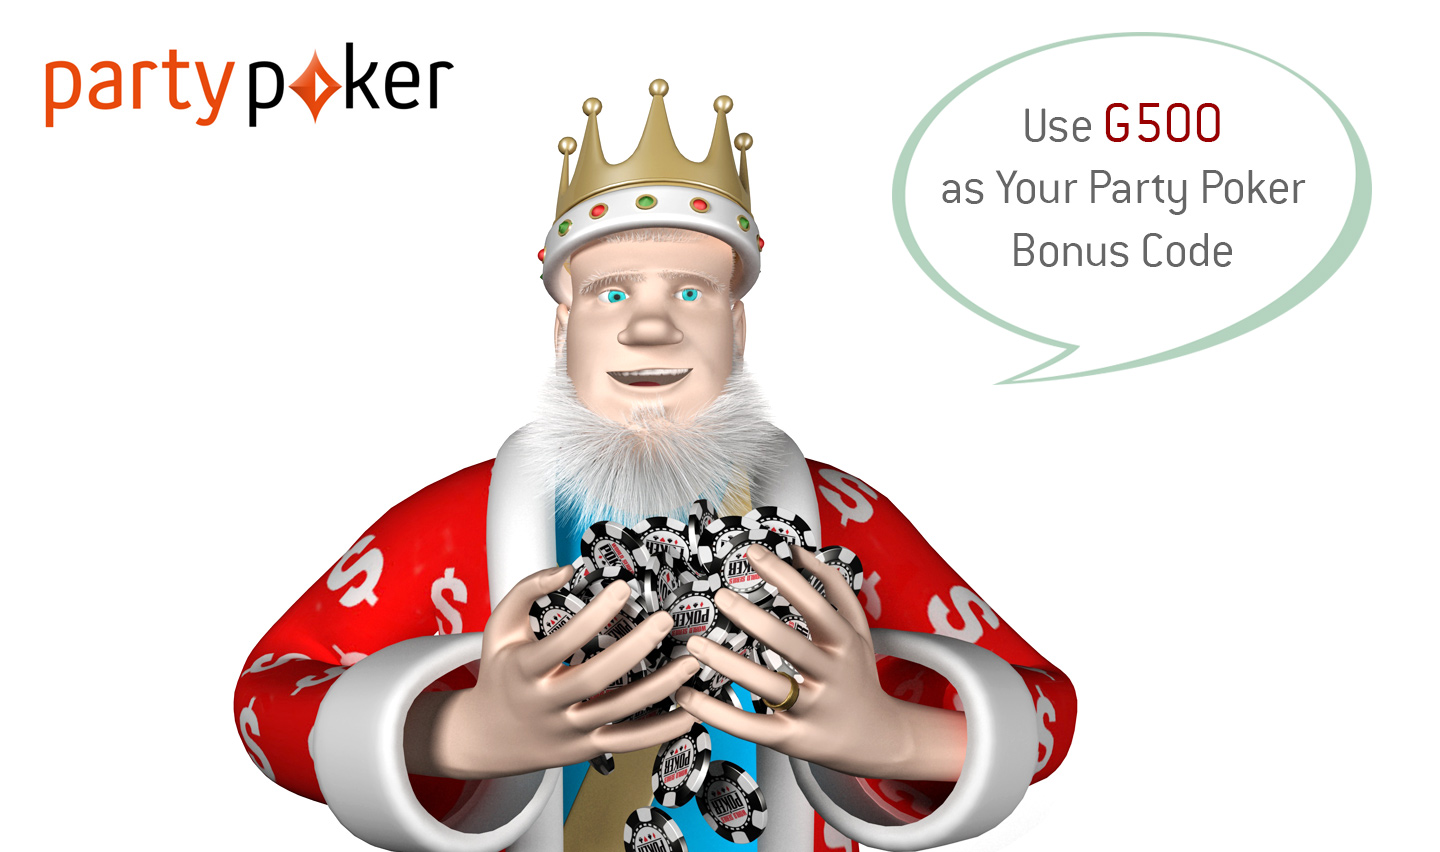 The King presents: Company logo partypoker.com - Information about the bonus code